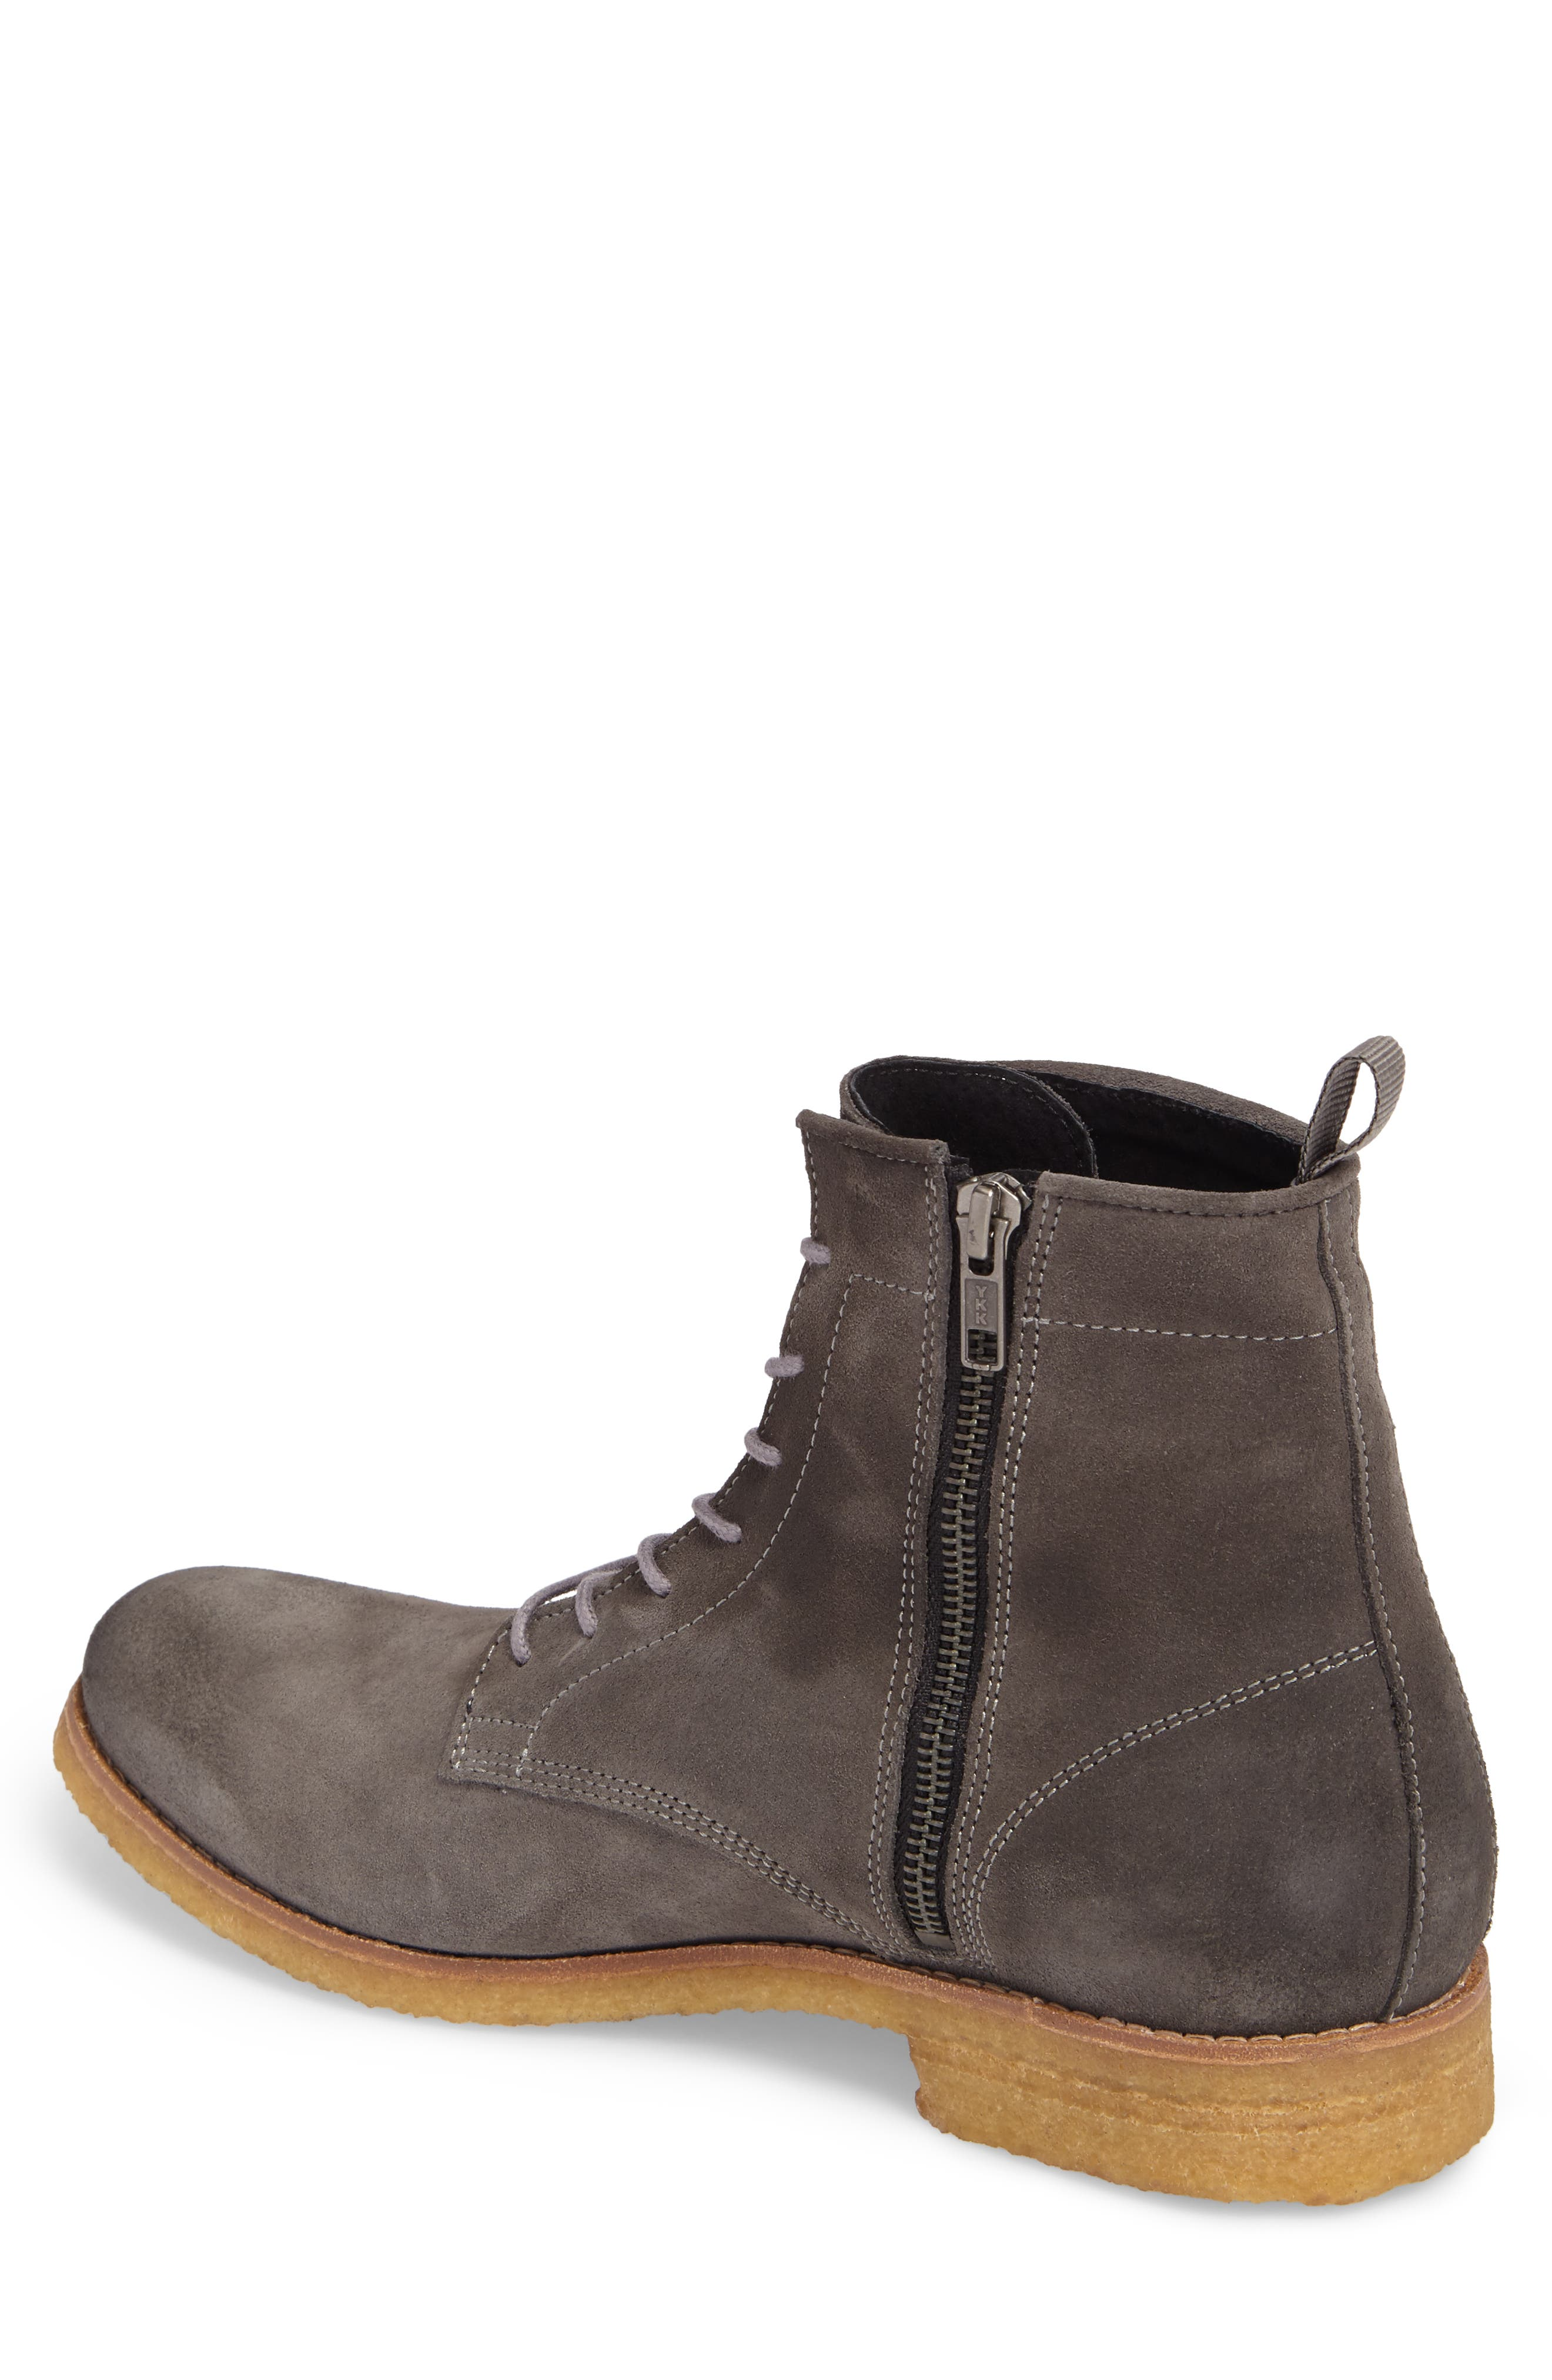 Alternate Image 2  - Supply Lab Jonah Plain Toe Boot (Men)